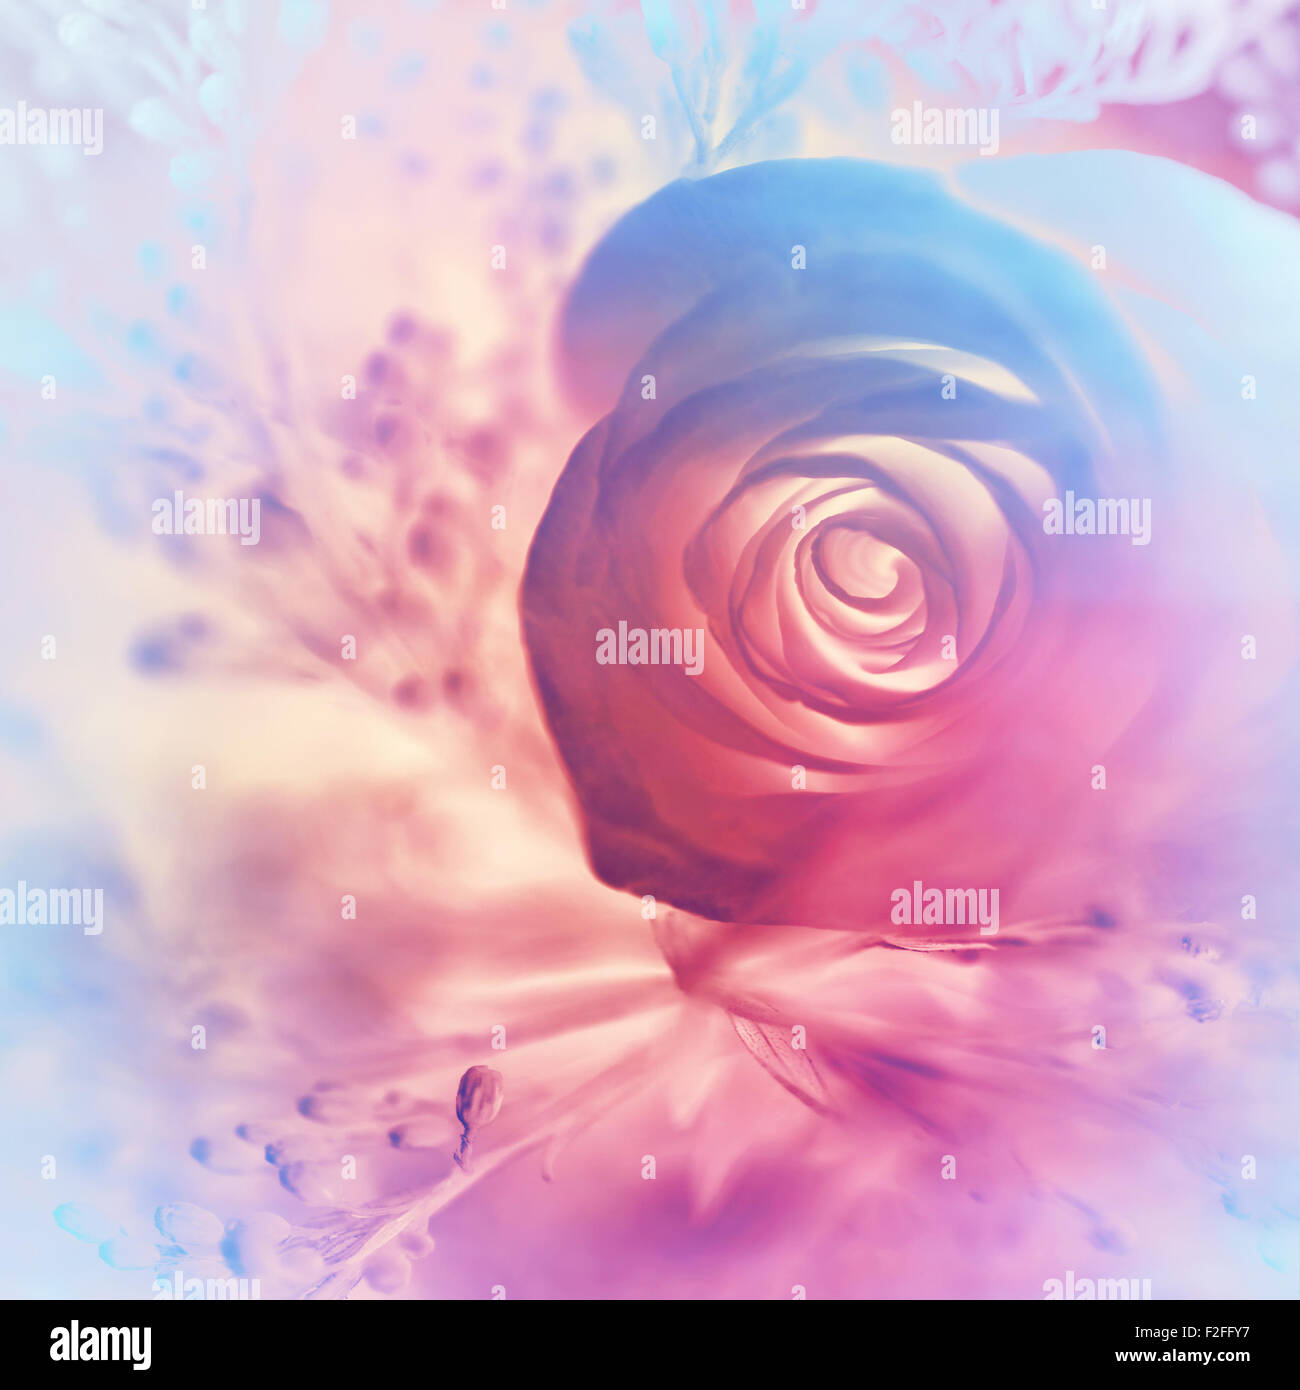 Dreamy Rose Background Abstract Pink And Purple Floral Wallpaper Stock Photo Royalty Free